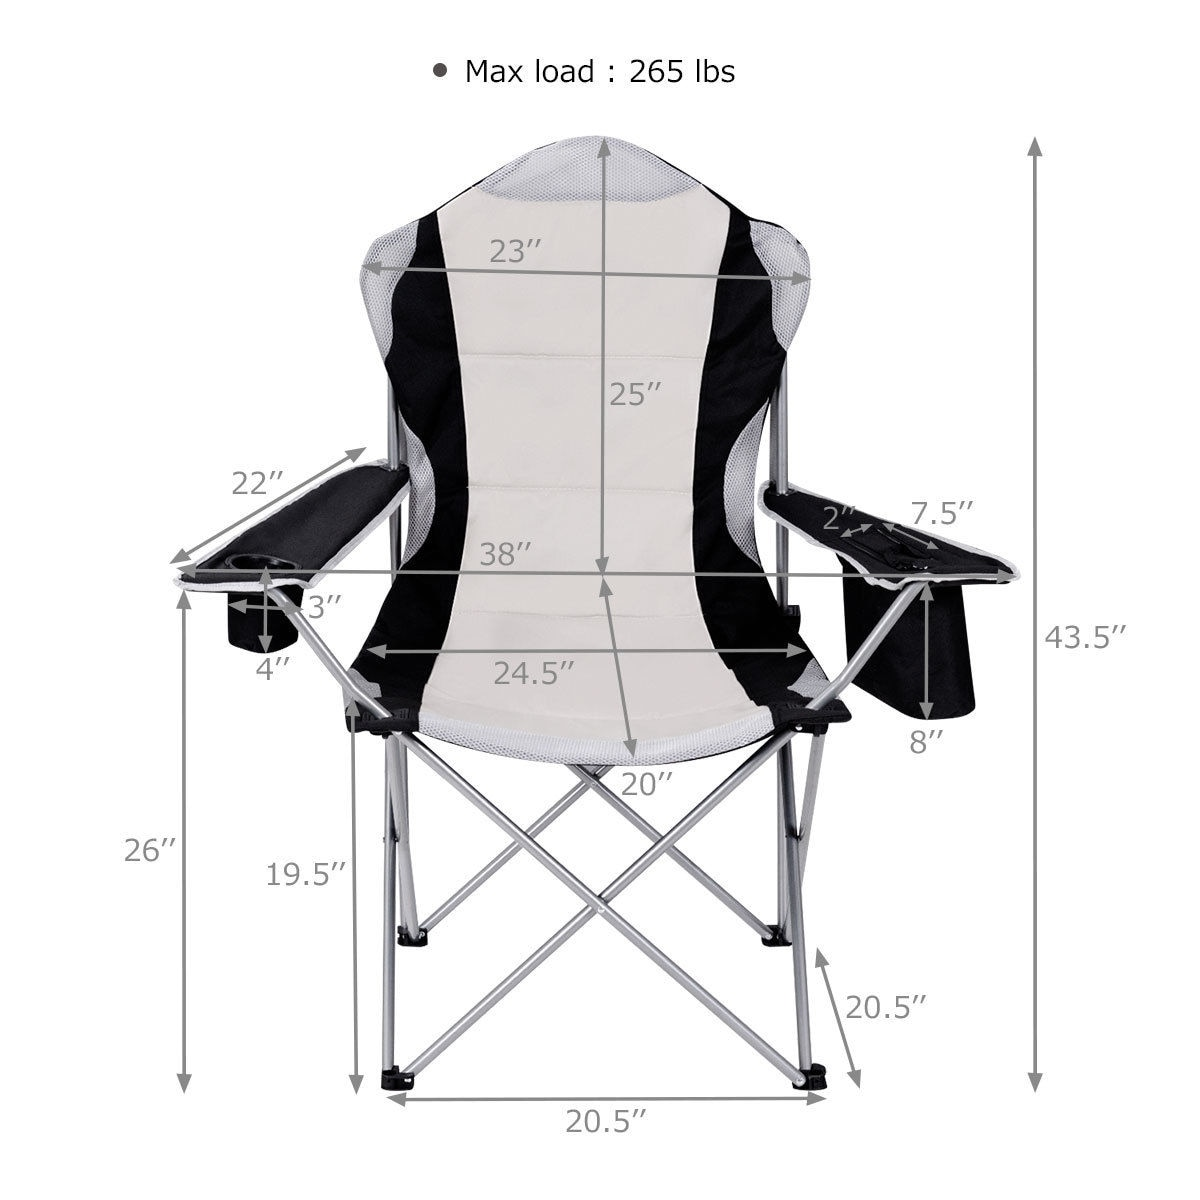 fishing chair rain cover modern leather dining chairs uk shop costway camping seat cup holder beach picnic outdoor portable folding bag grey free shipping today overstock com 16733416